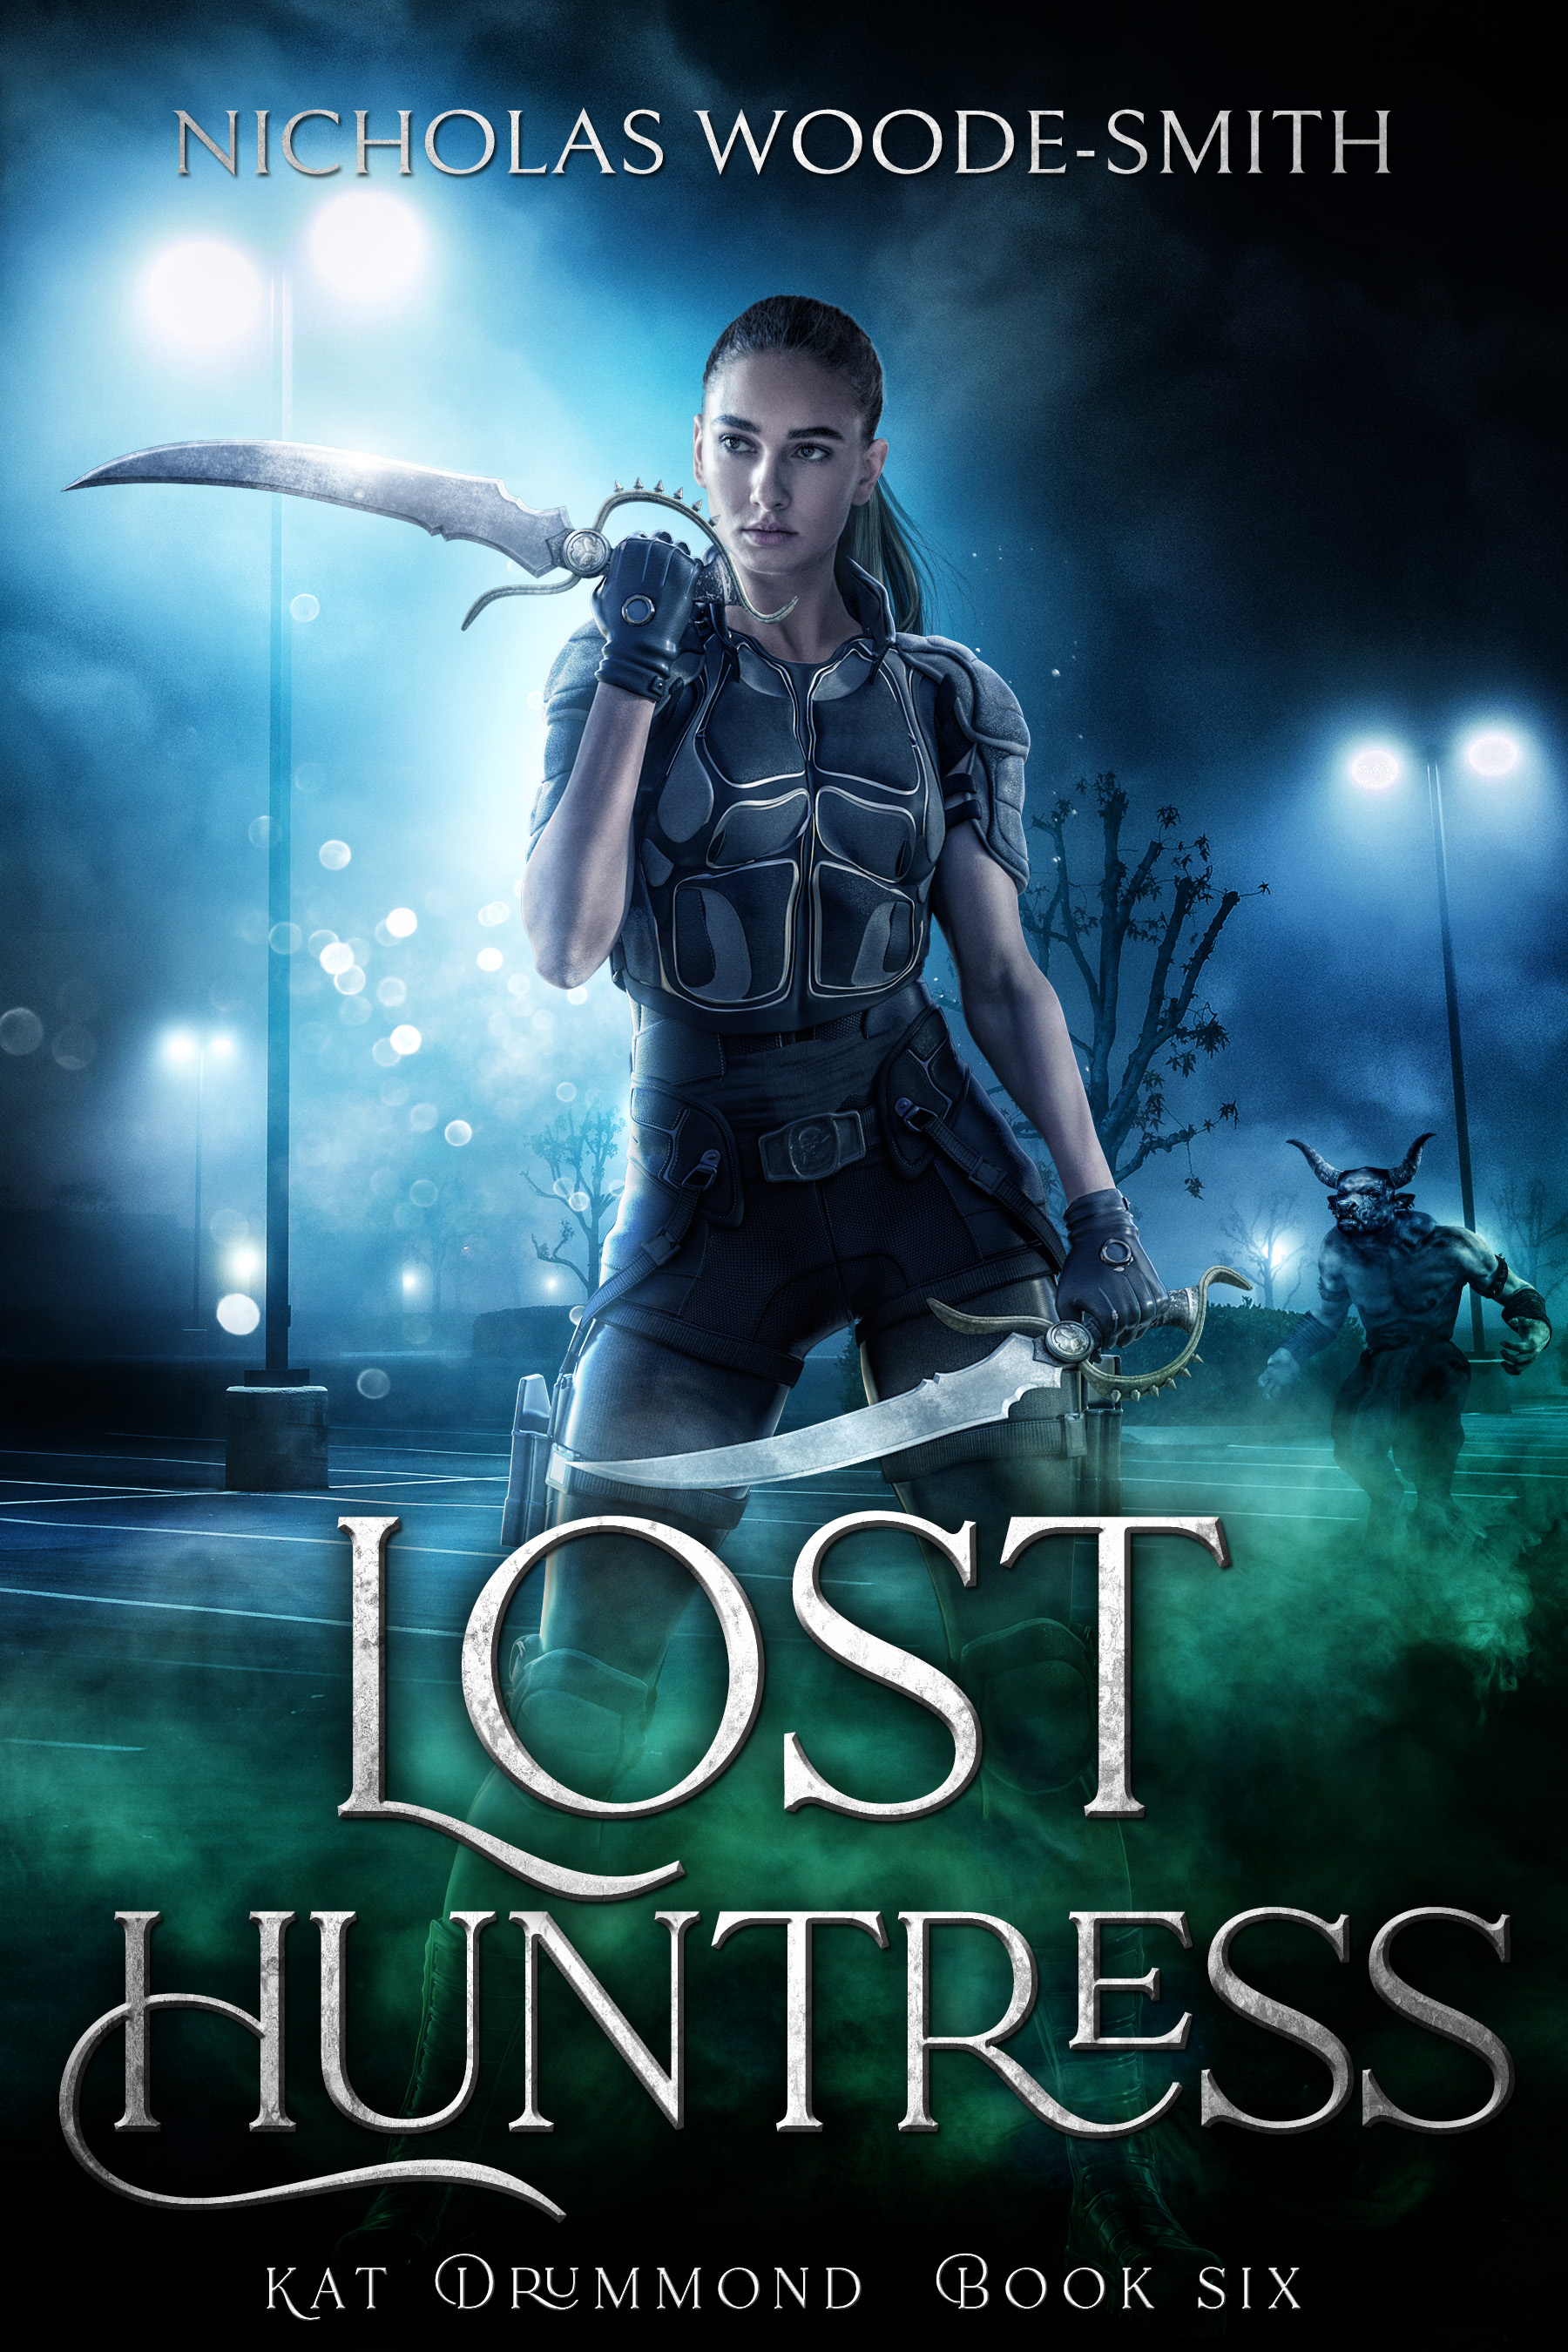 [PDF] [EPUB] Lost Huntress (Kat Drummond, #6) Download by Nicholas Woode-Smith